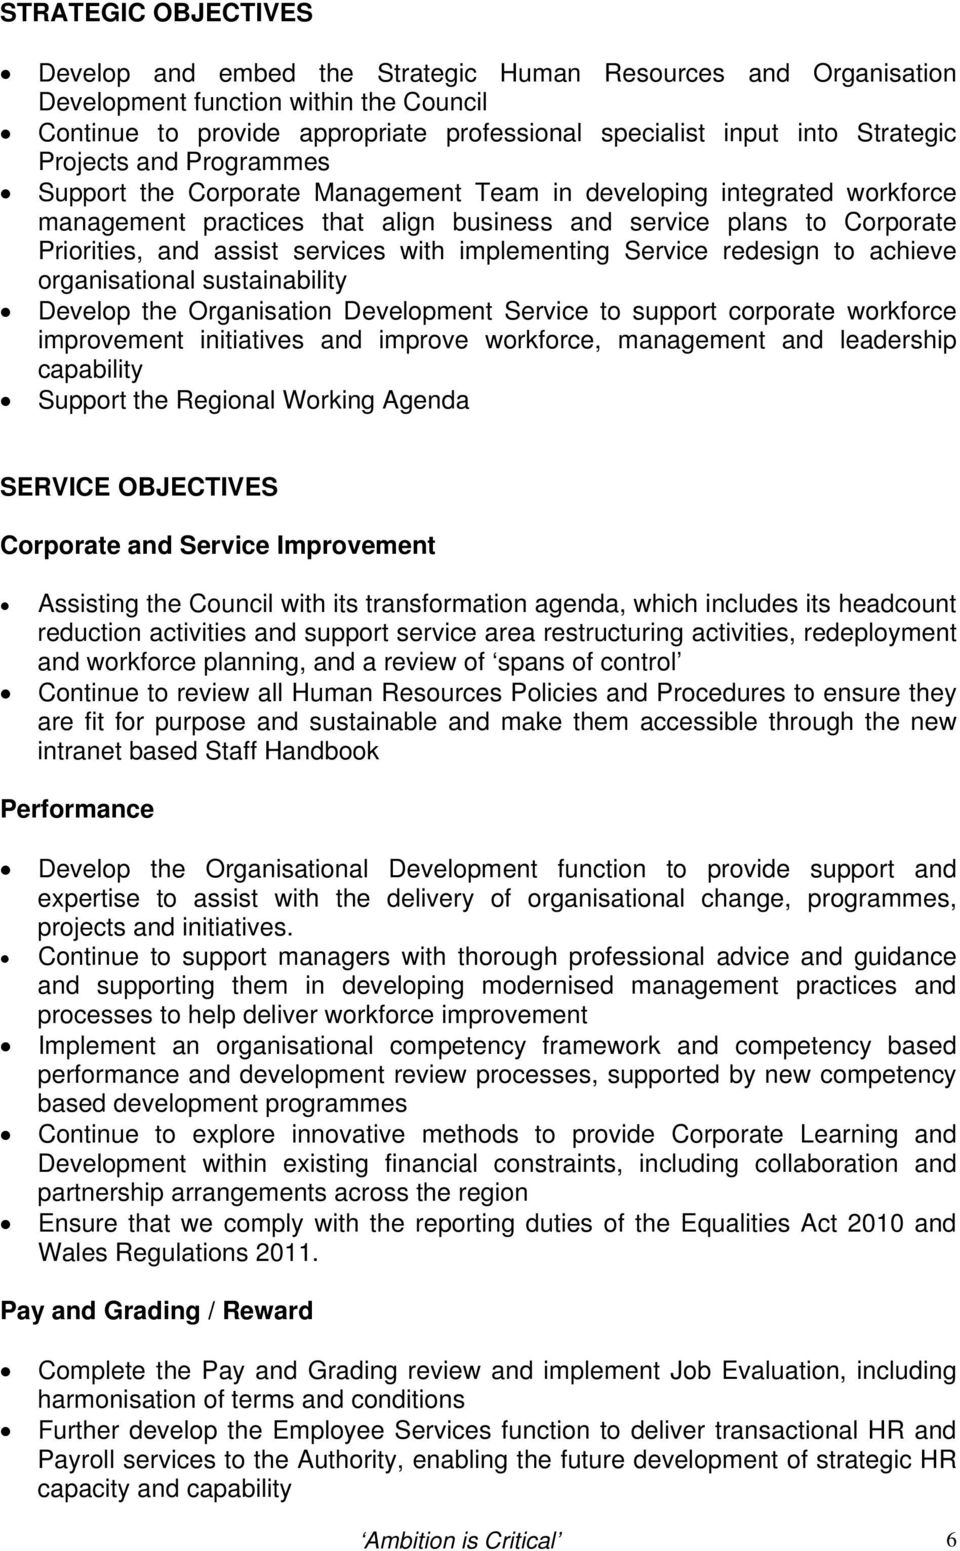 assist services with implementing Service redesign to achieve organisational sustainability Develop the Organisation Development Service to support corporate workforce improvement initiatives and